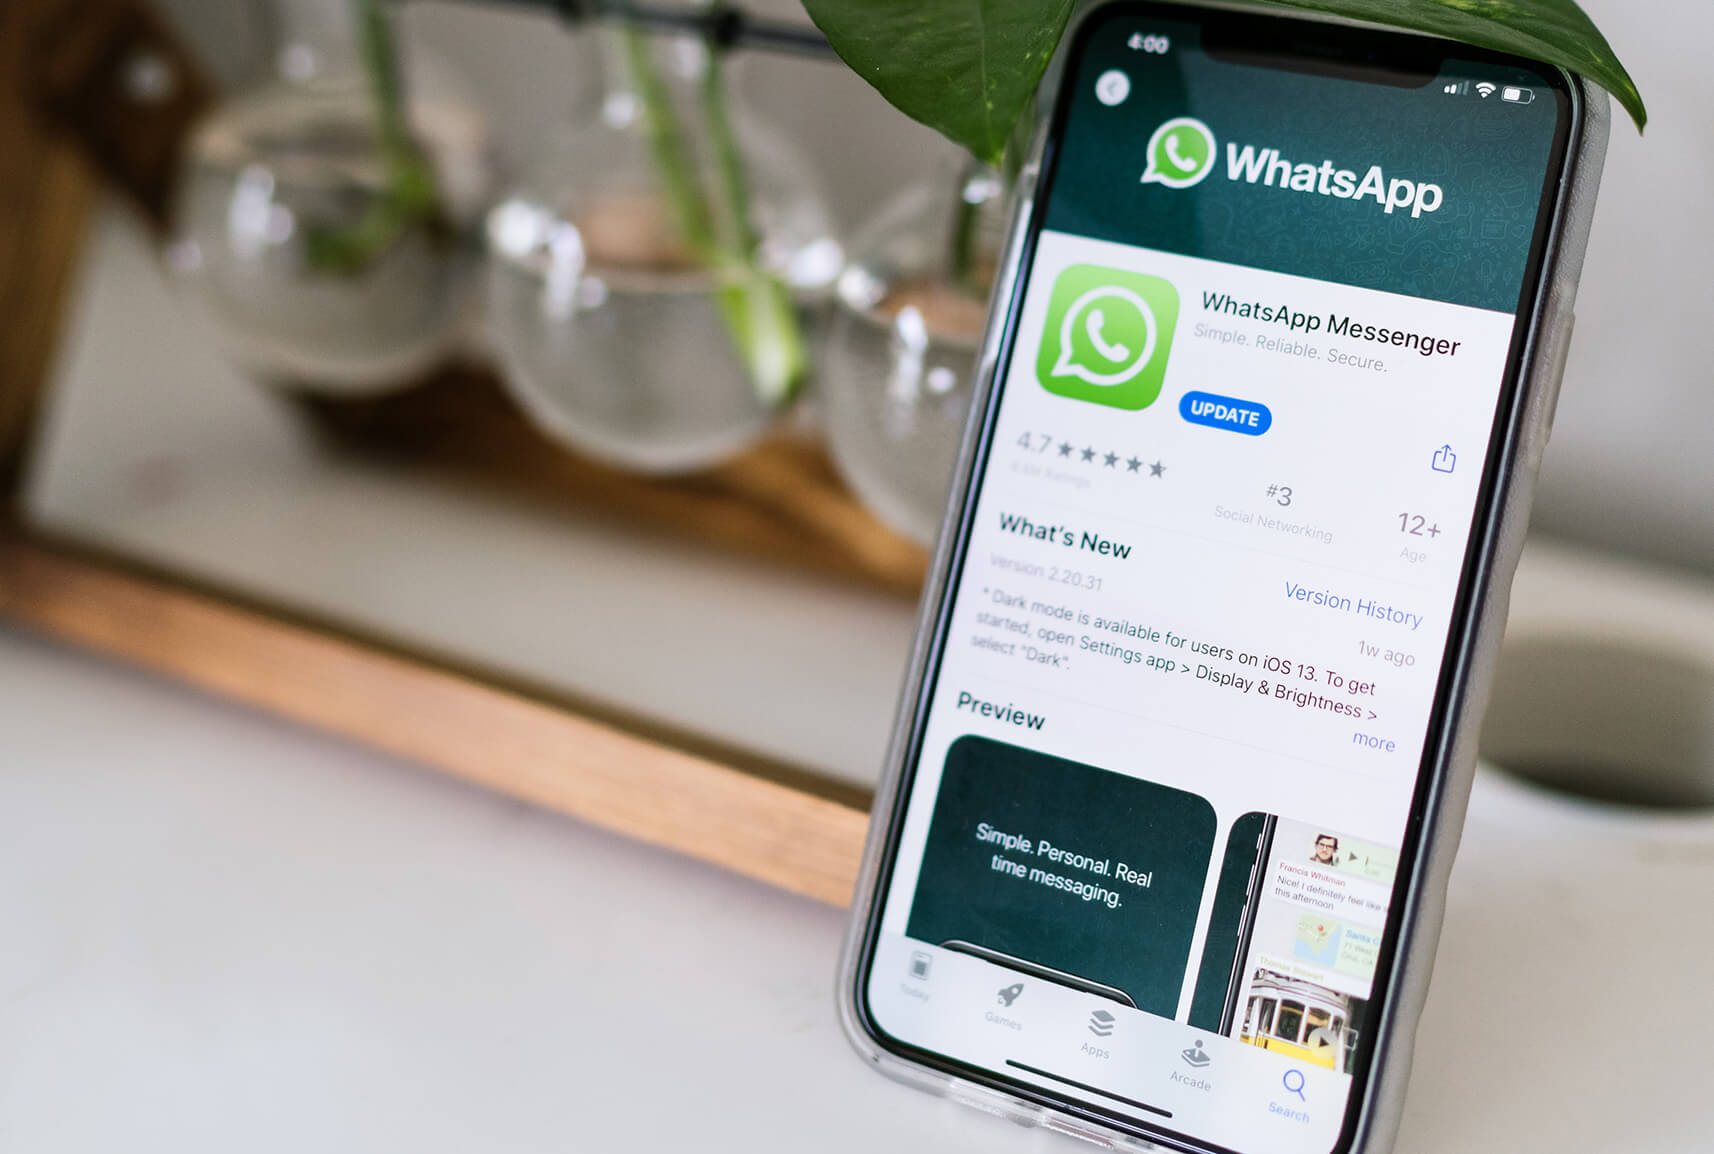 Using WhatsApp app to stay connected in self isolation